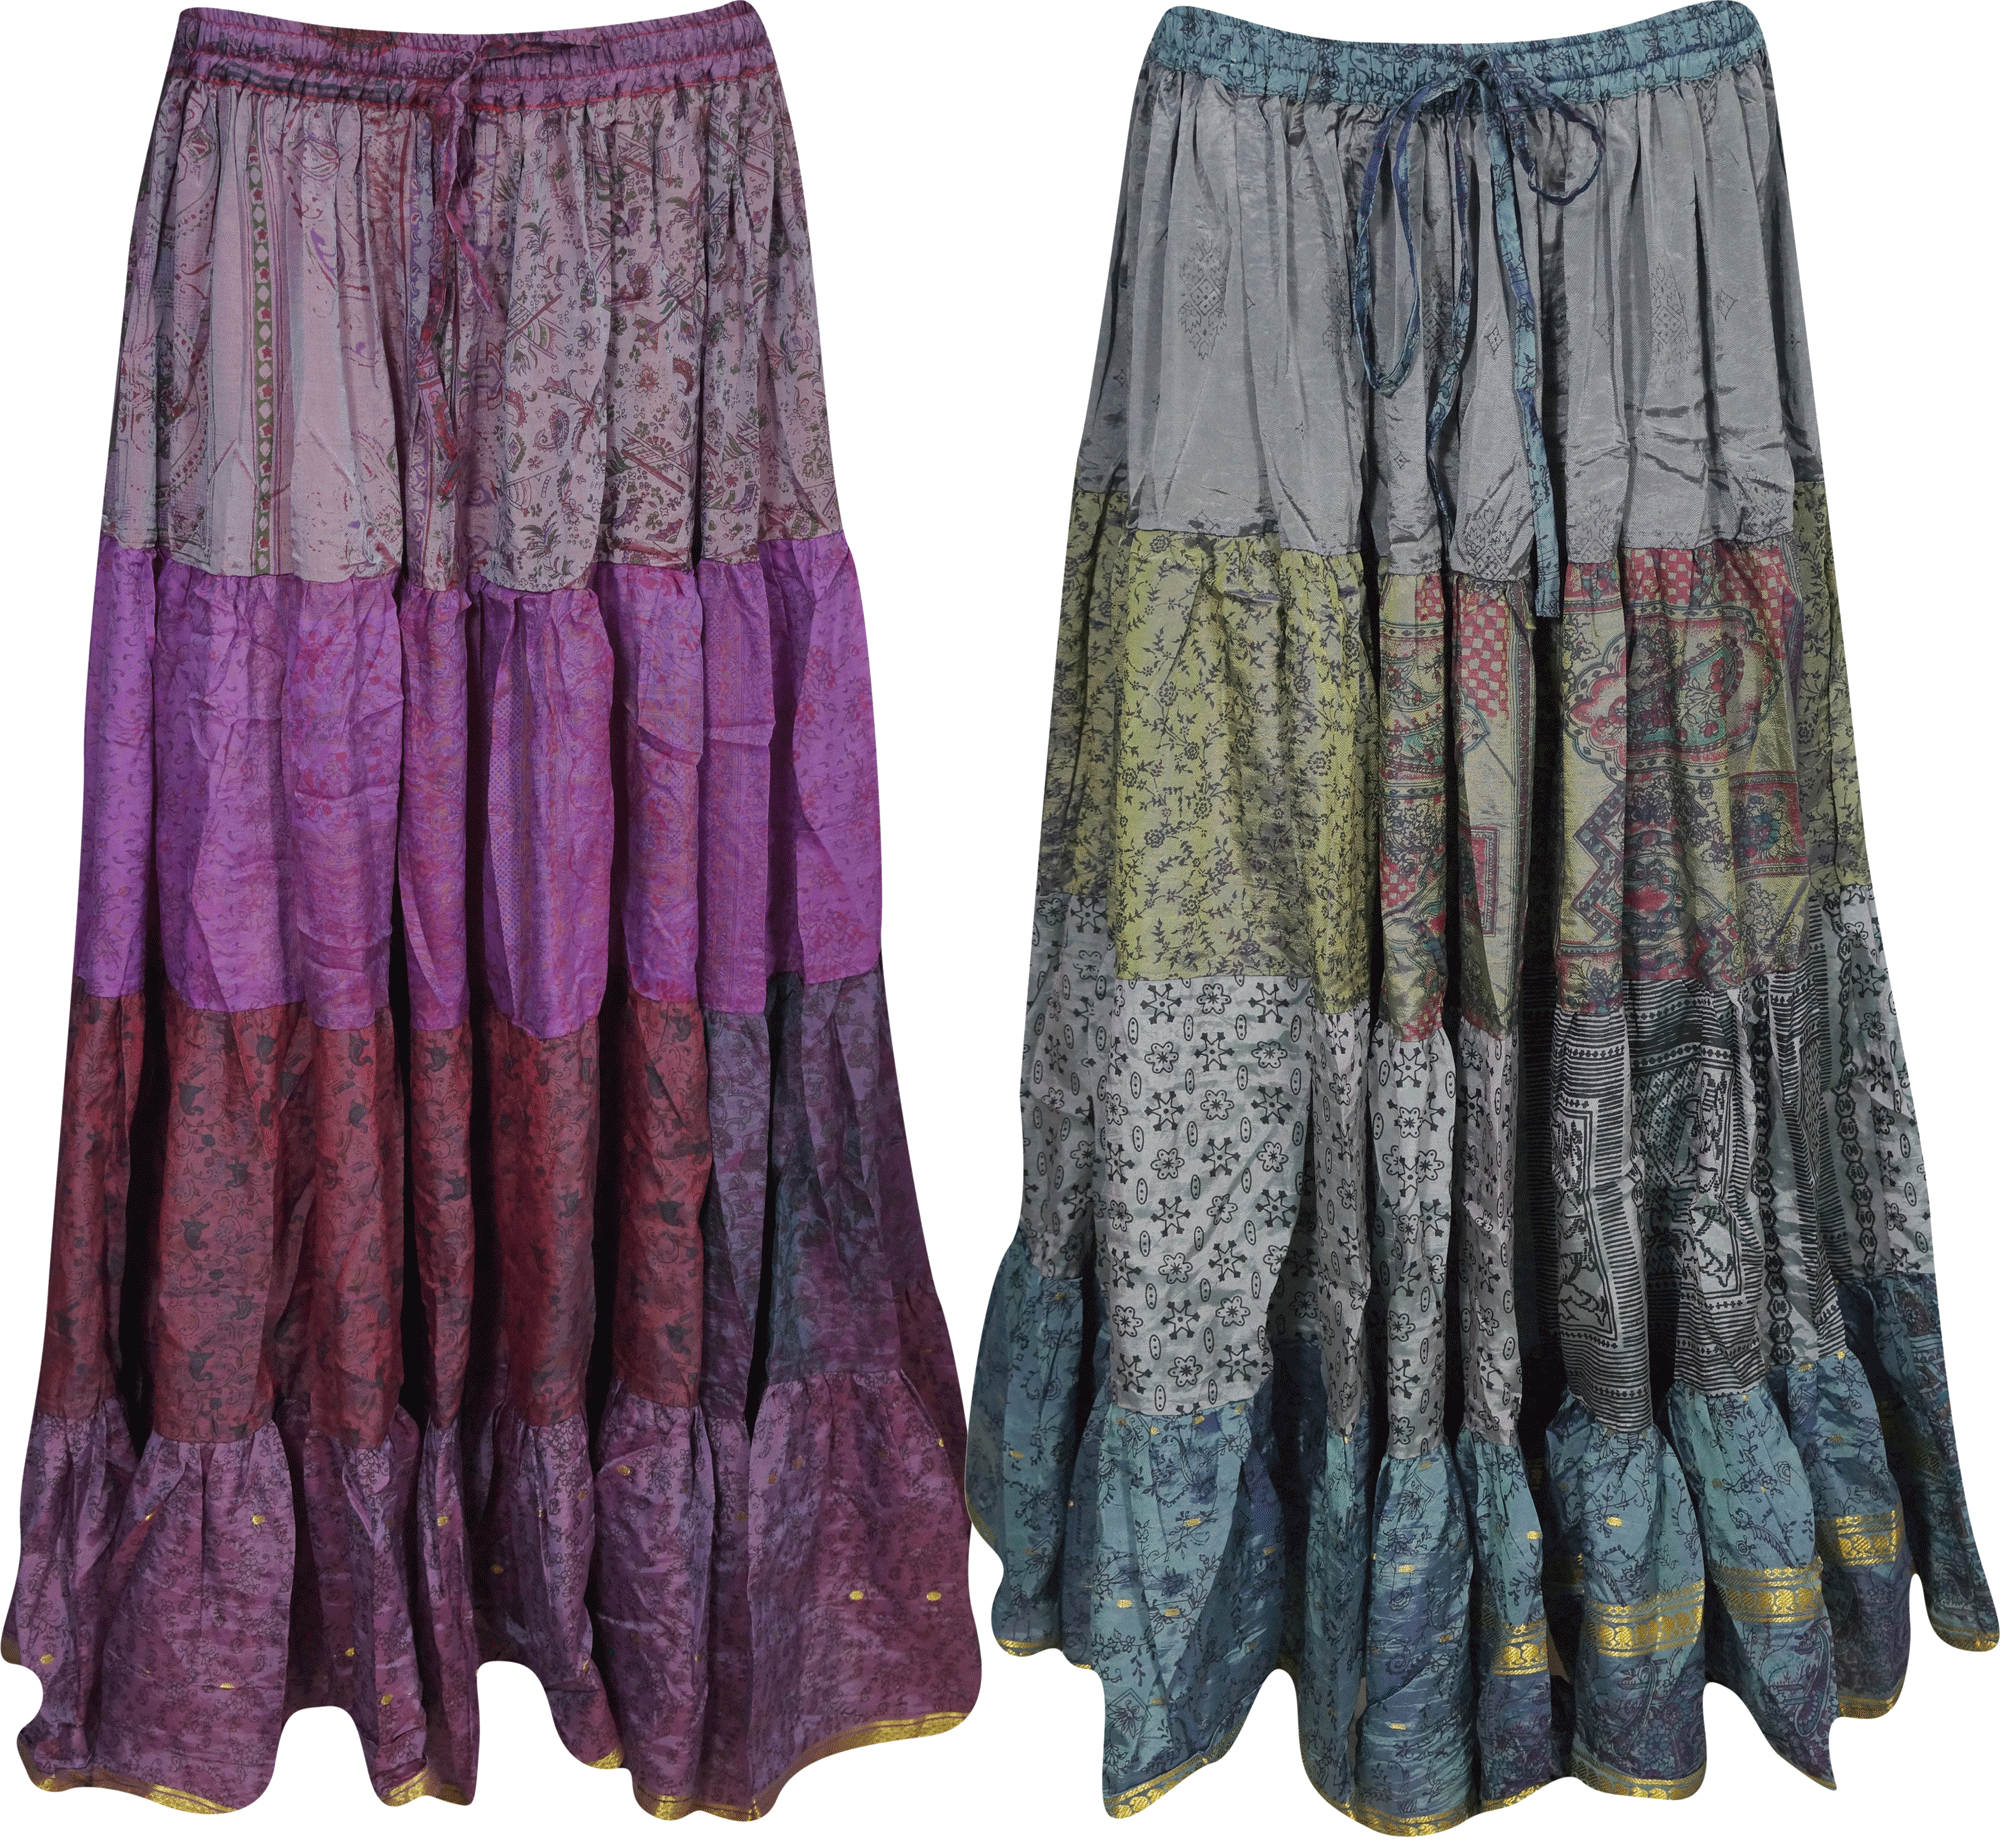 Mogul Womens Long Maxi Skirt Silk Sari Full Flare A-Line Gypsy Boho Fashion Indian Skirts Lot Of 2 Pcs